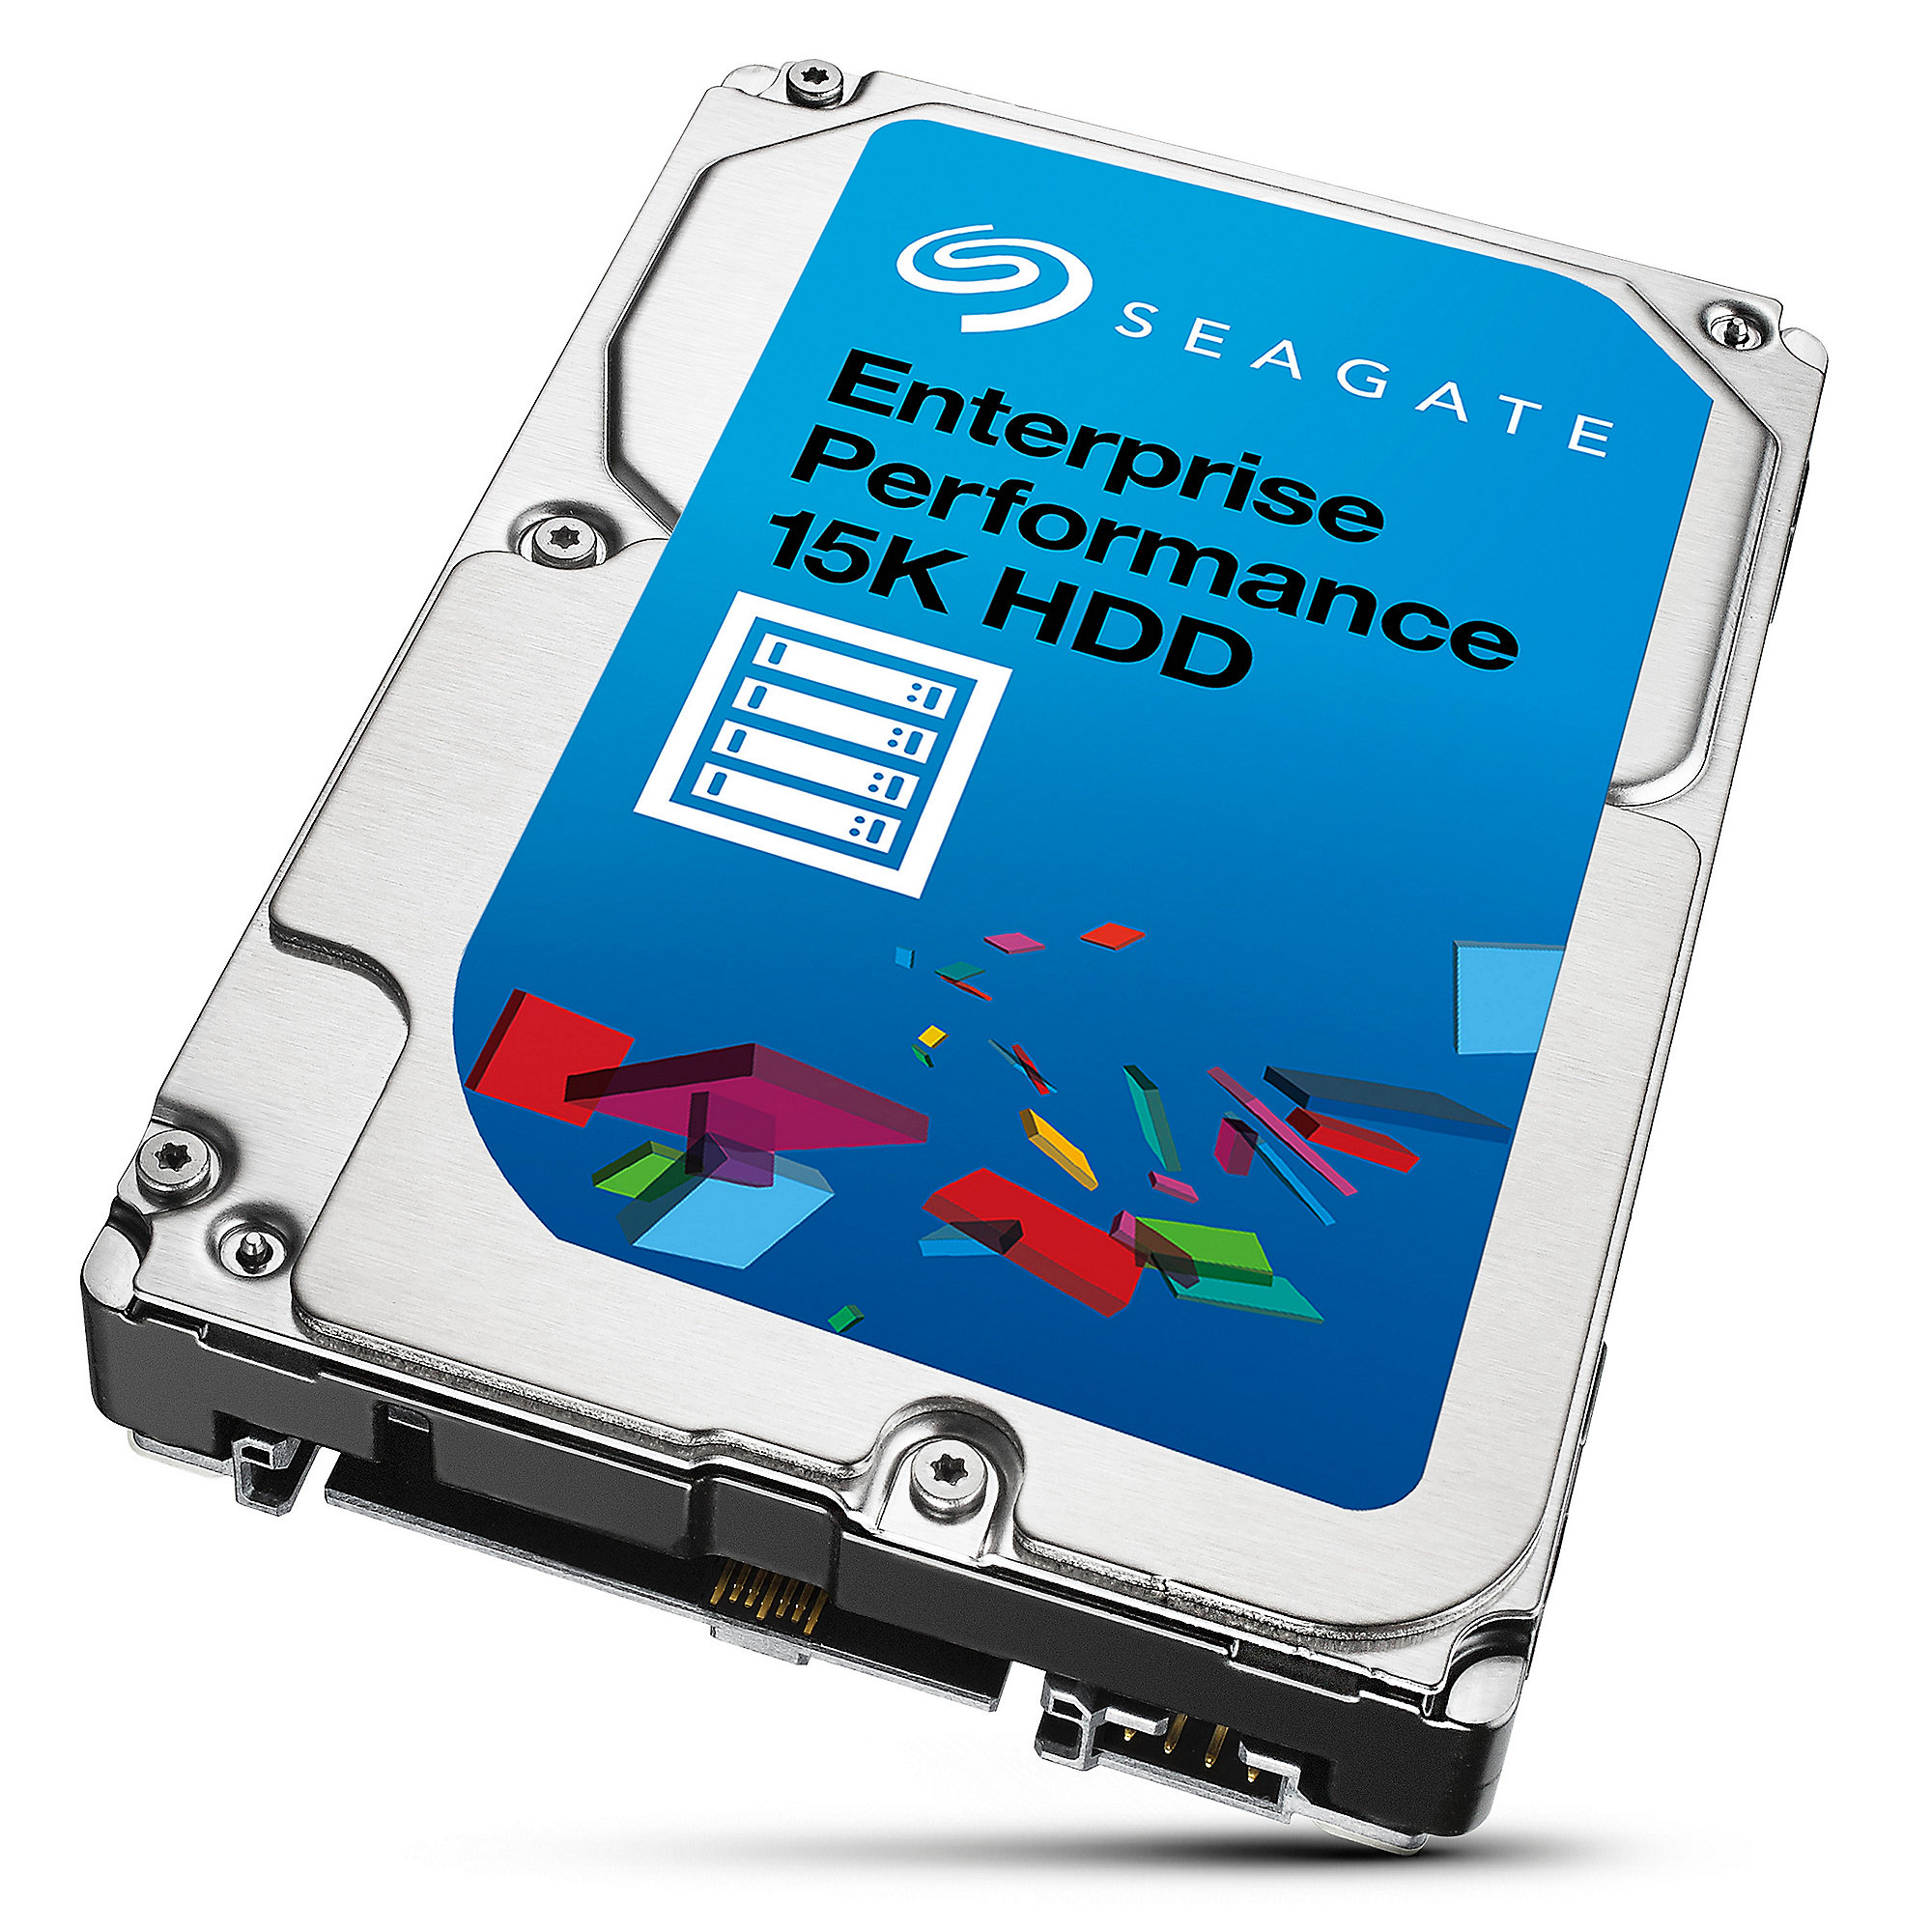 Seagate Enterprise Performance 15K 600GB 15000rpm 256MB SAS1200 2.5zoll